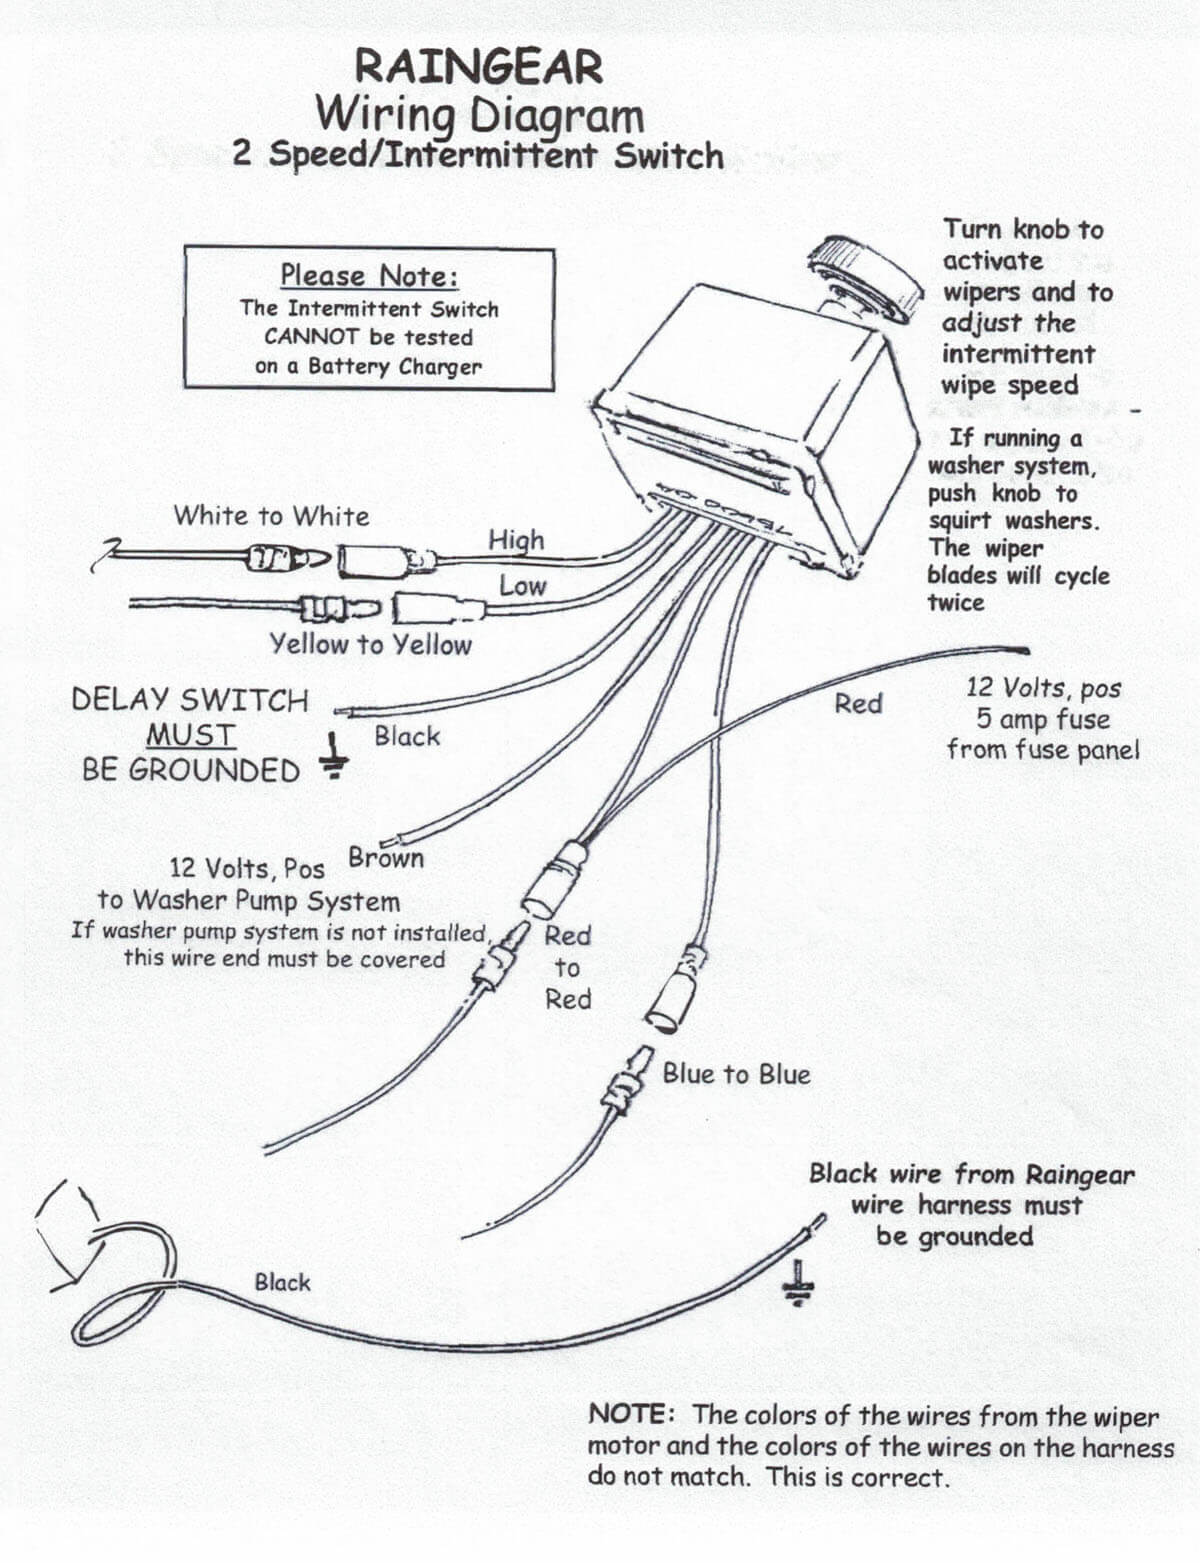 5 Wire Motor Wiring Diagram from raingearwipers.com